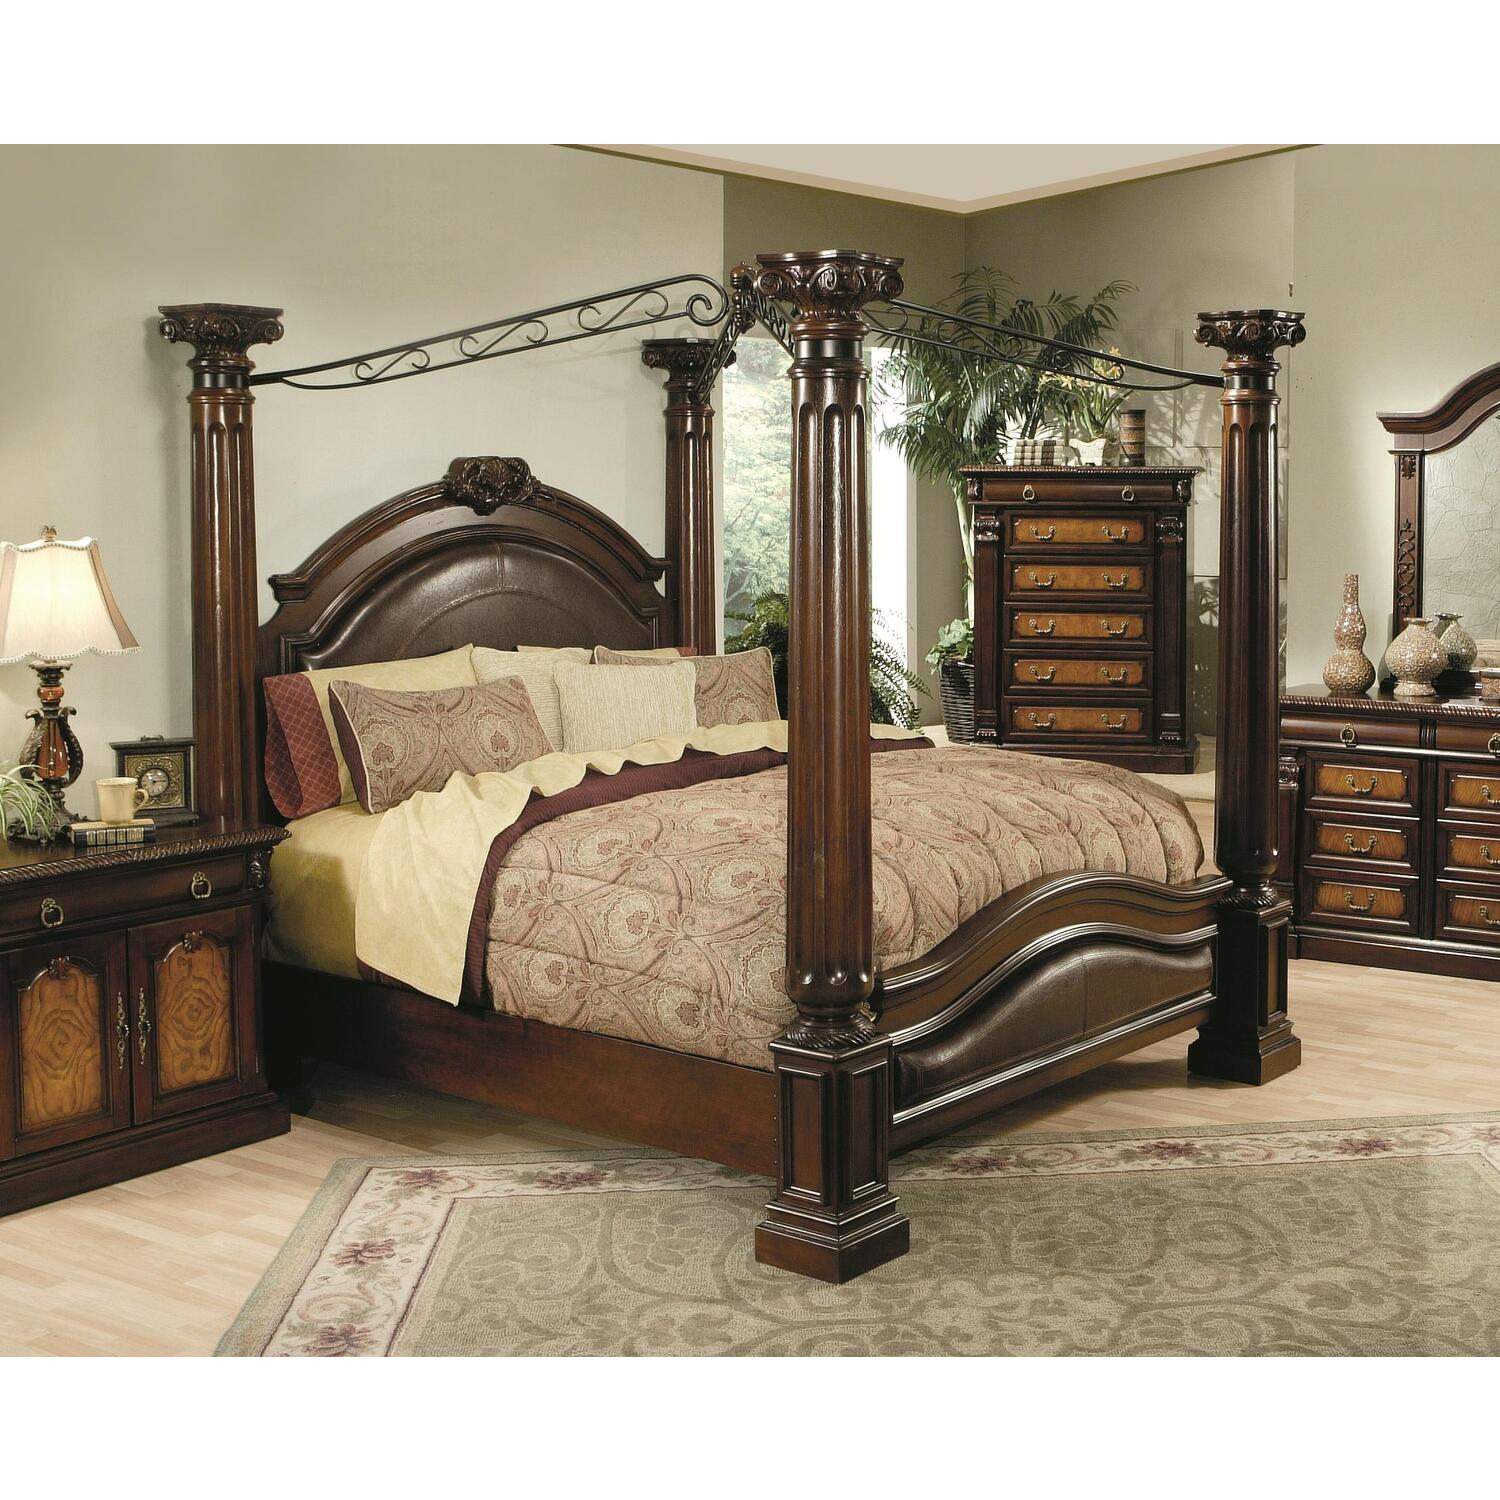 High Poster Bed King Montecito Canopy Bed From 1954 99 To 2403 99 Ojcommerce